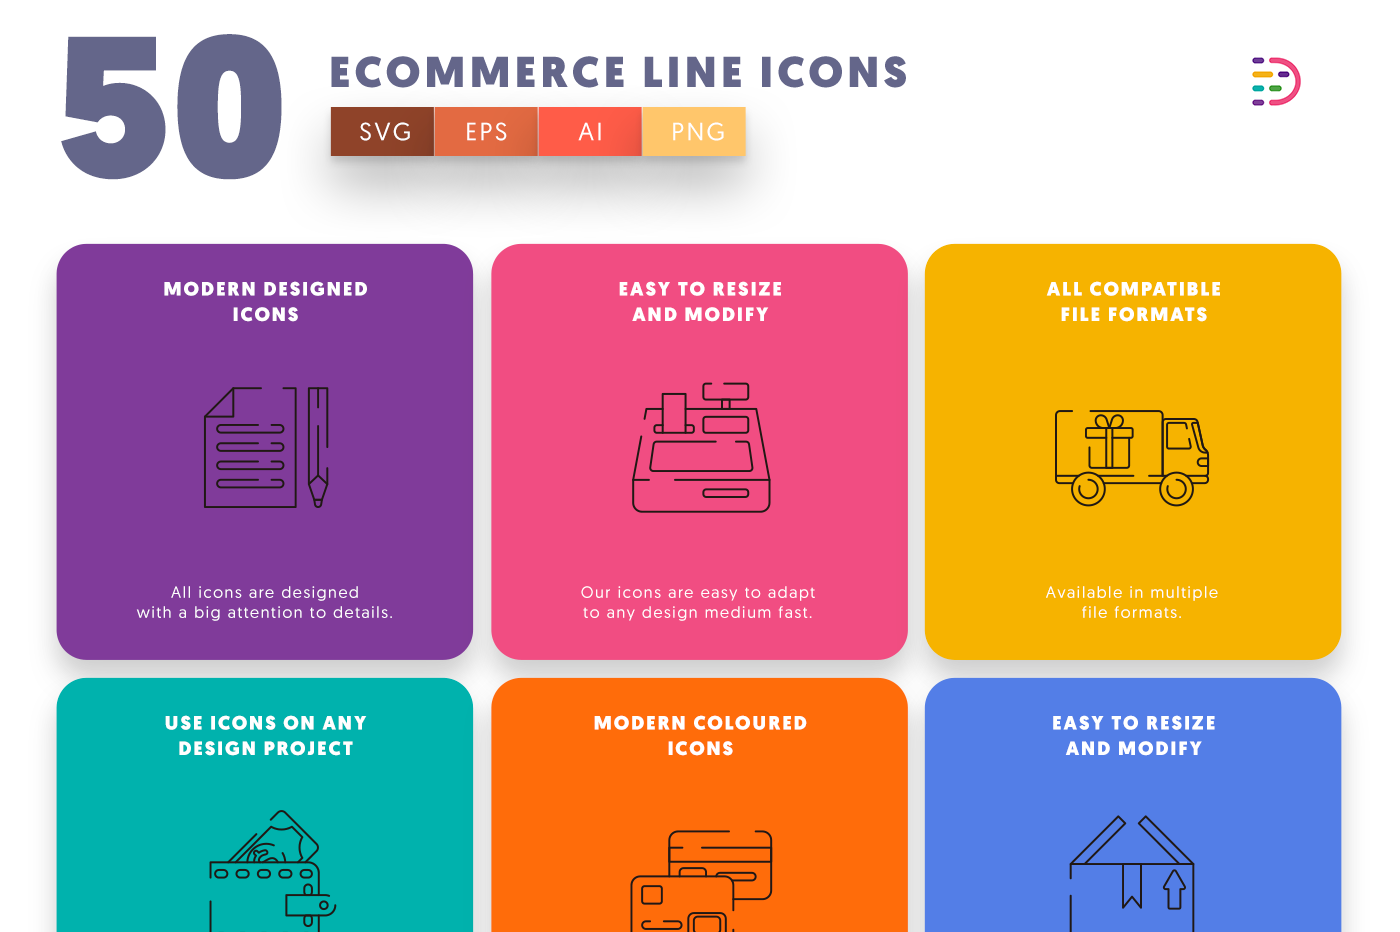 50 Ecommerce Line Icons with colored backgrounds